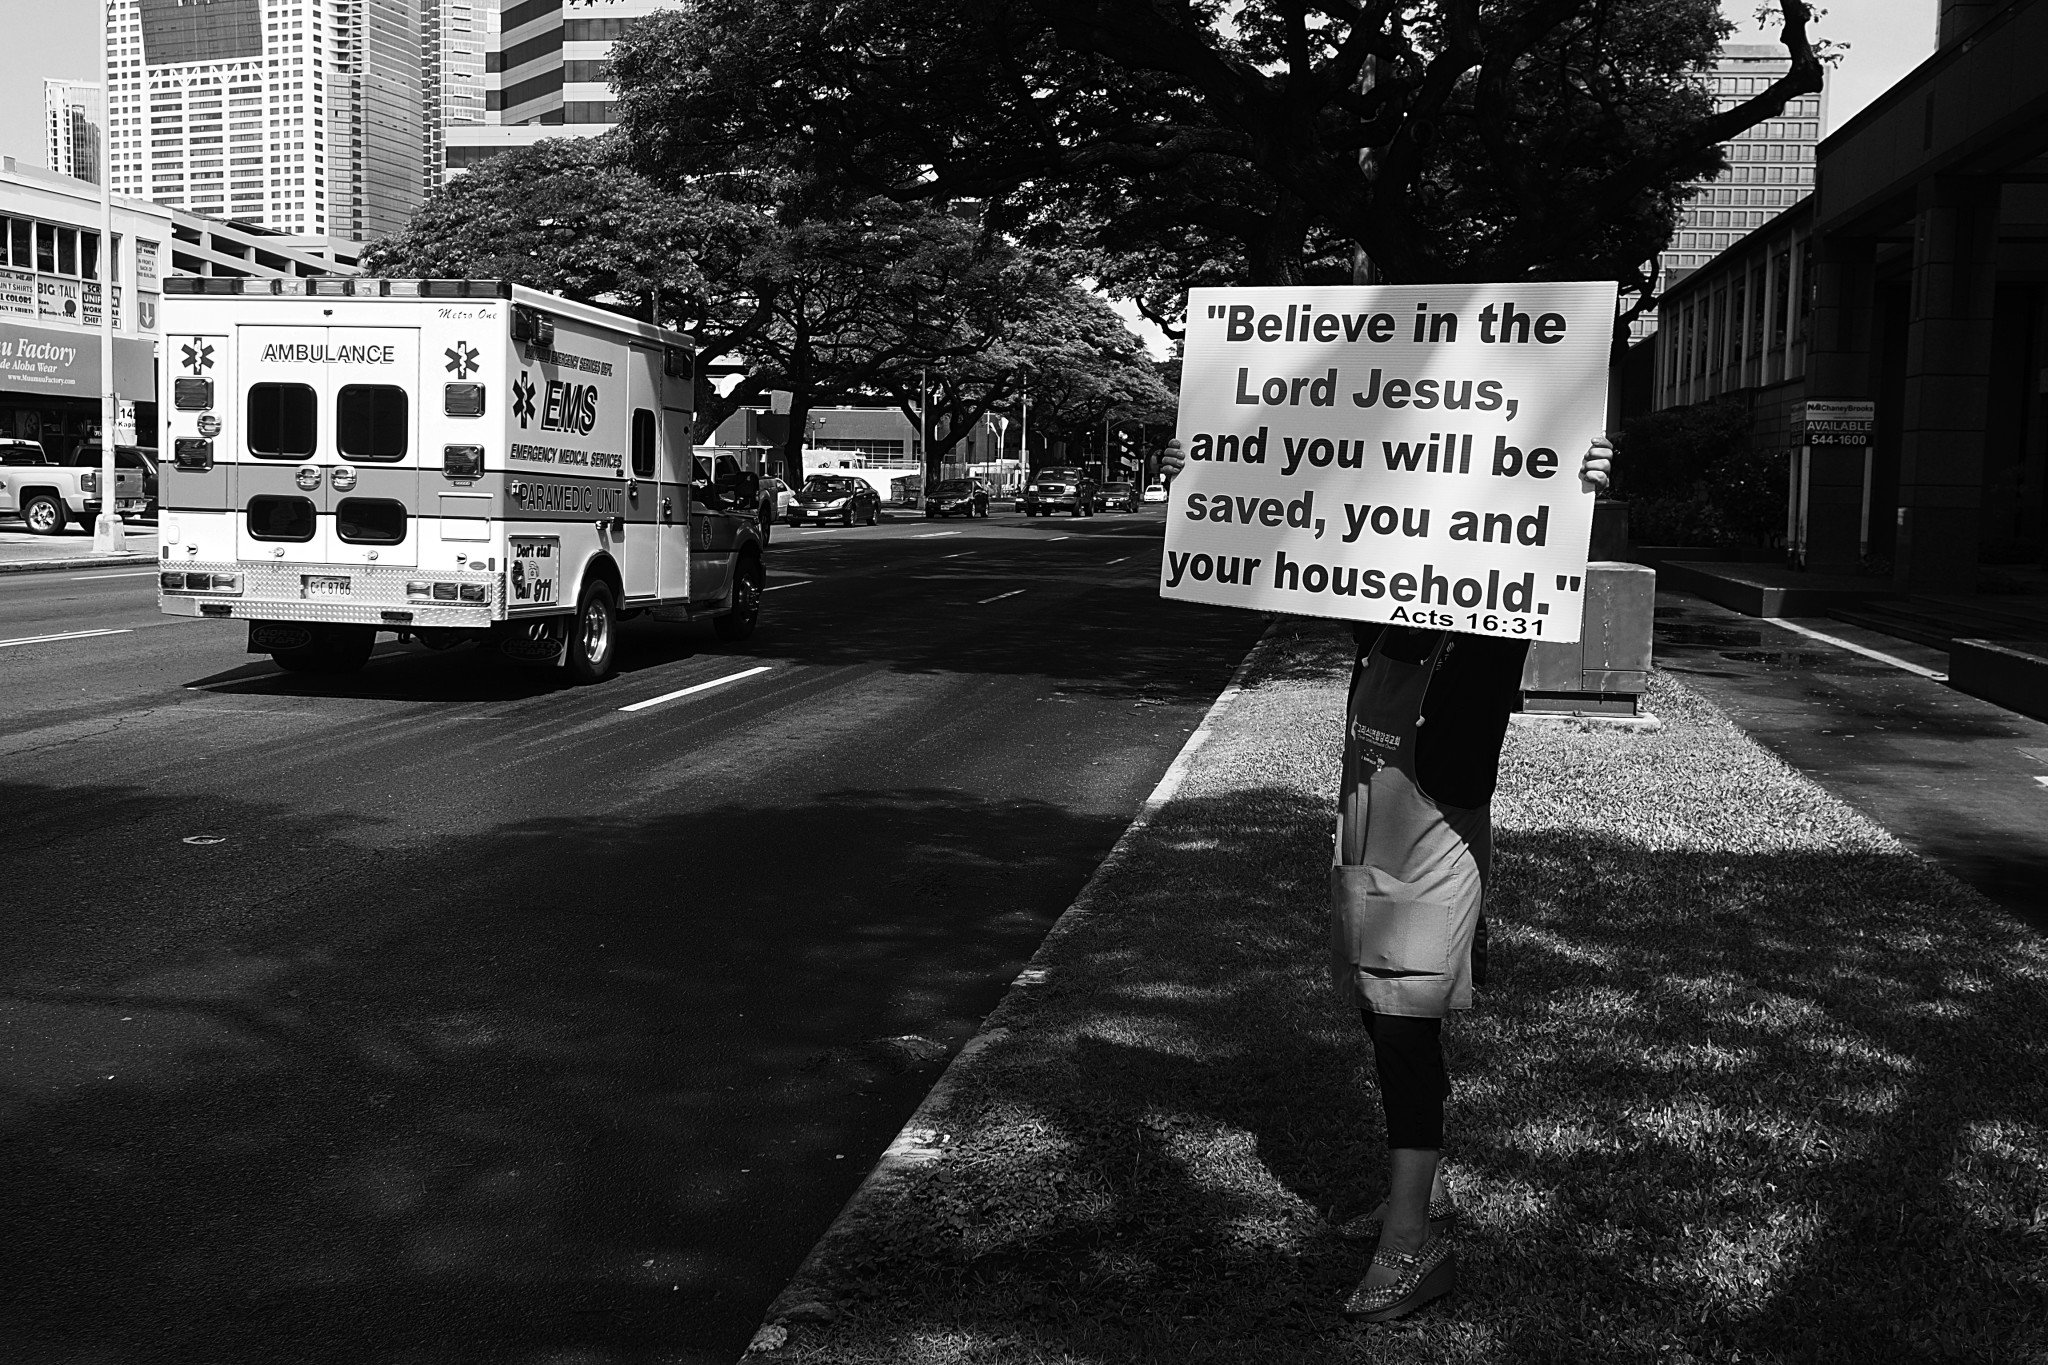 <p>Could the sign borne by a woman on Keeamouku Street have been a message for the occupant of a passing ambulance?</p>